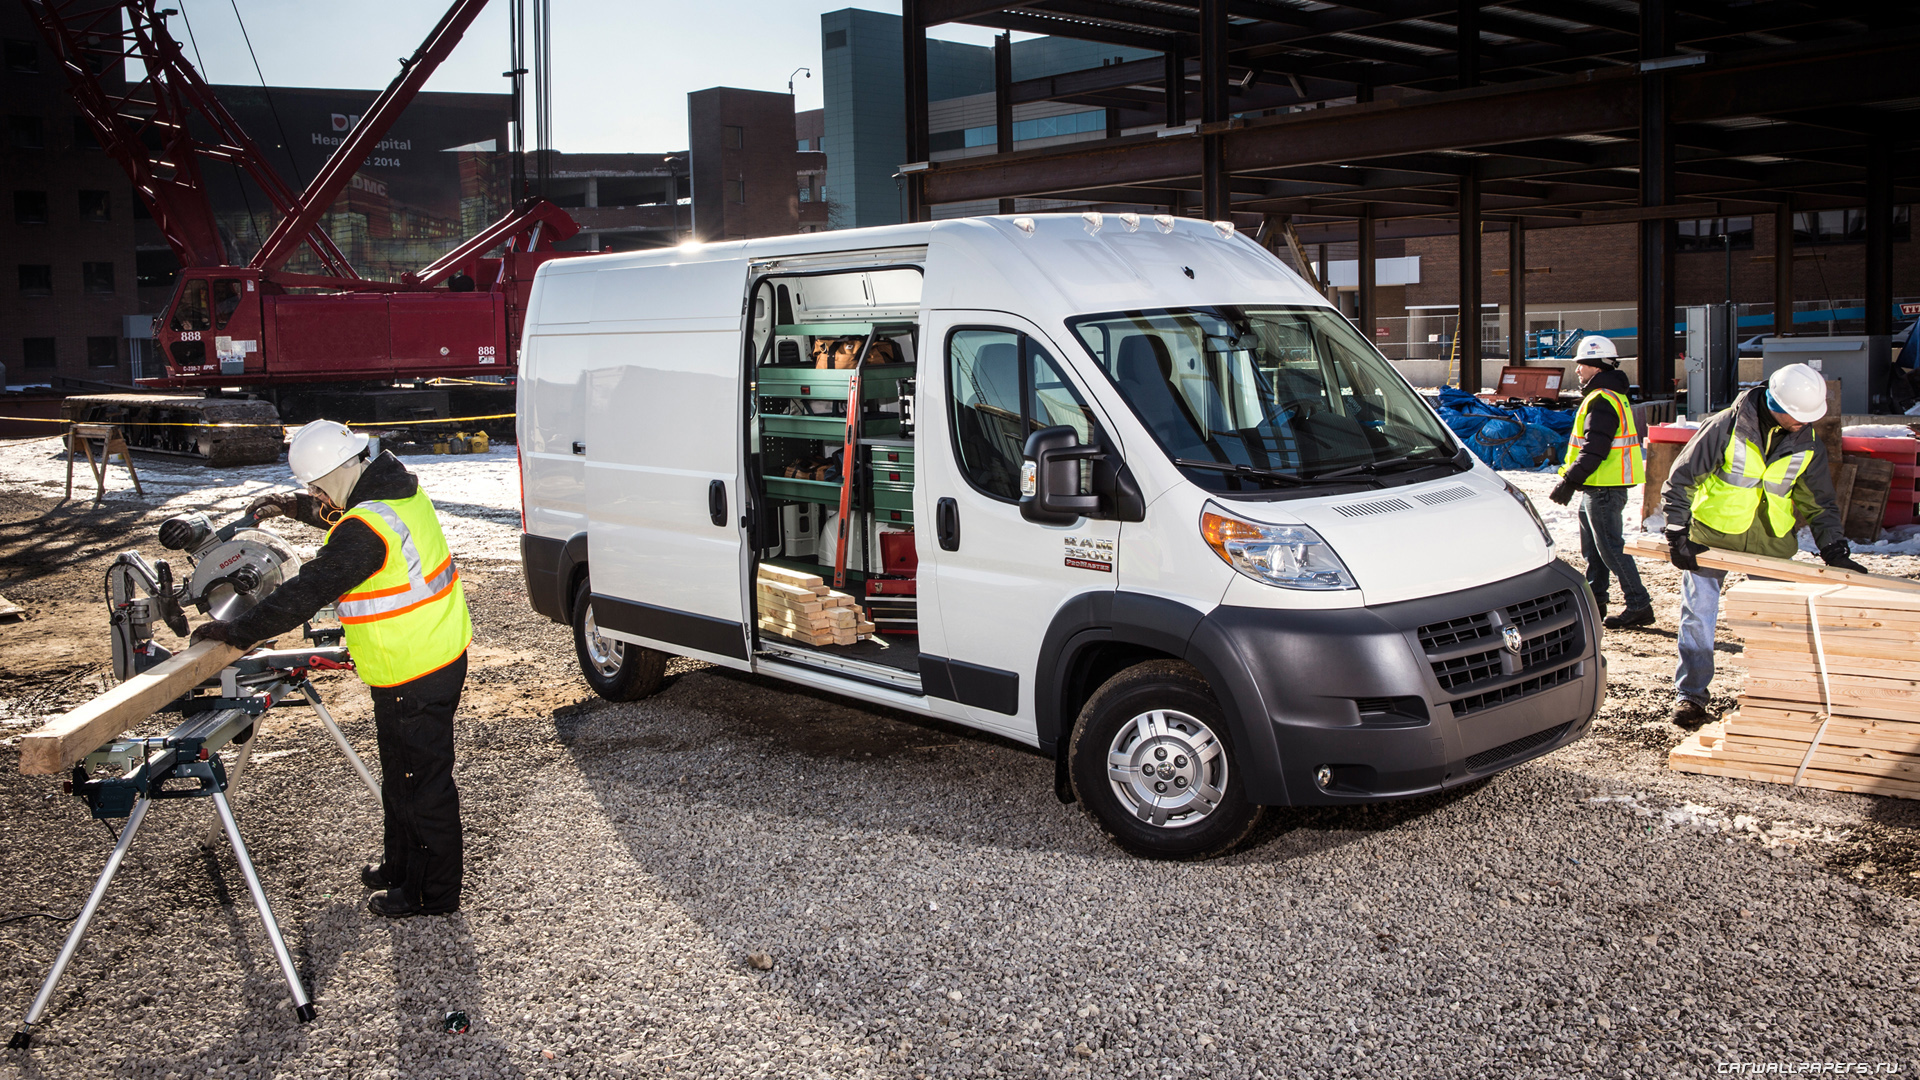 New 2015 Ram Promaster Deals And Lease Offers